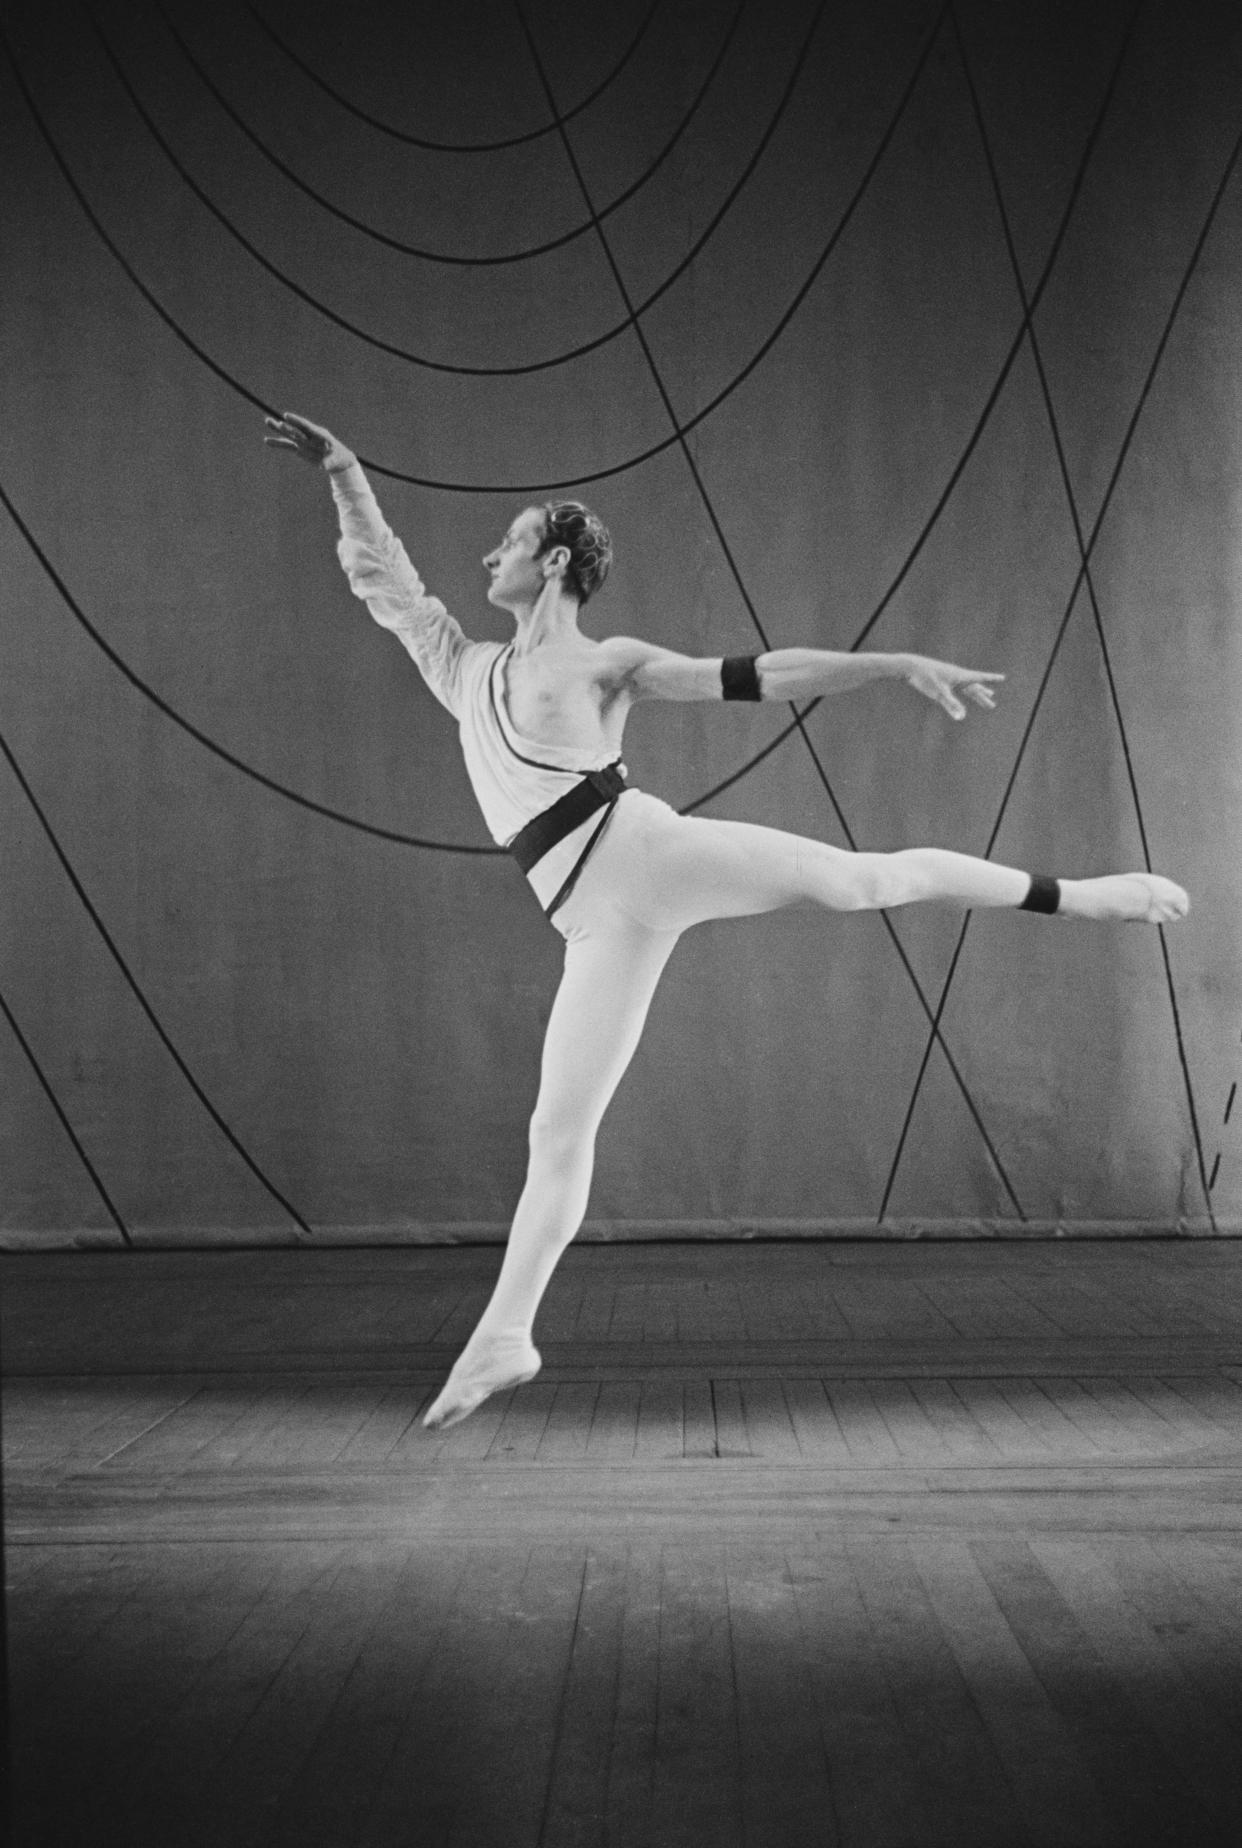 Henry Danton in a scene from the Frederick Ashton produced ballet 'Symphonic Variations' as performed by the Sadler's Wells Ballet at the Royal Opera House, Covent Garden, London, 1946. (Photo by Baron/Hulton Archive/Getty Images)